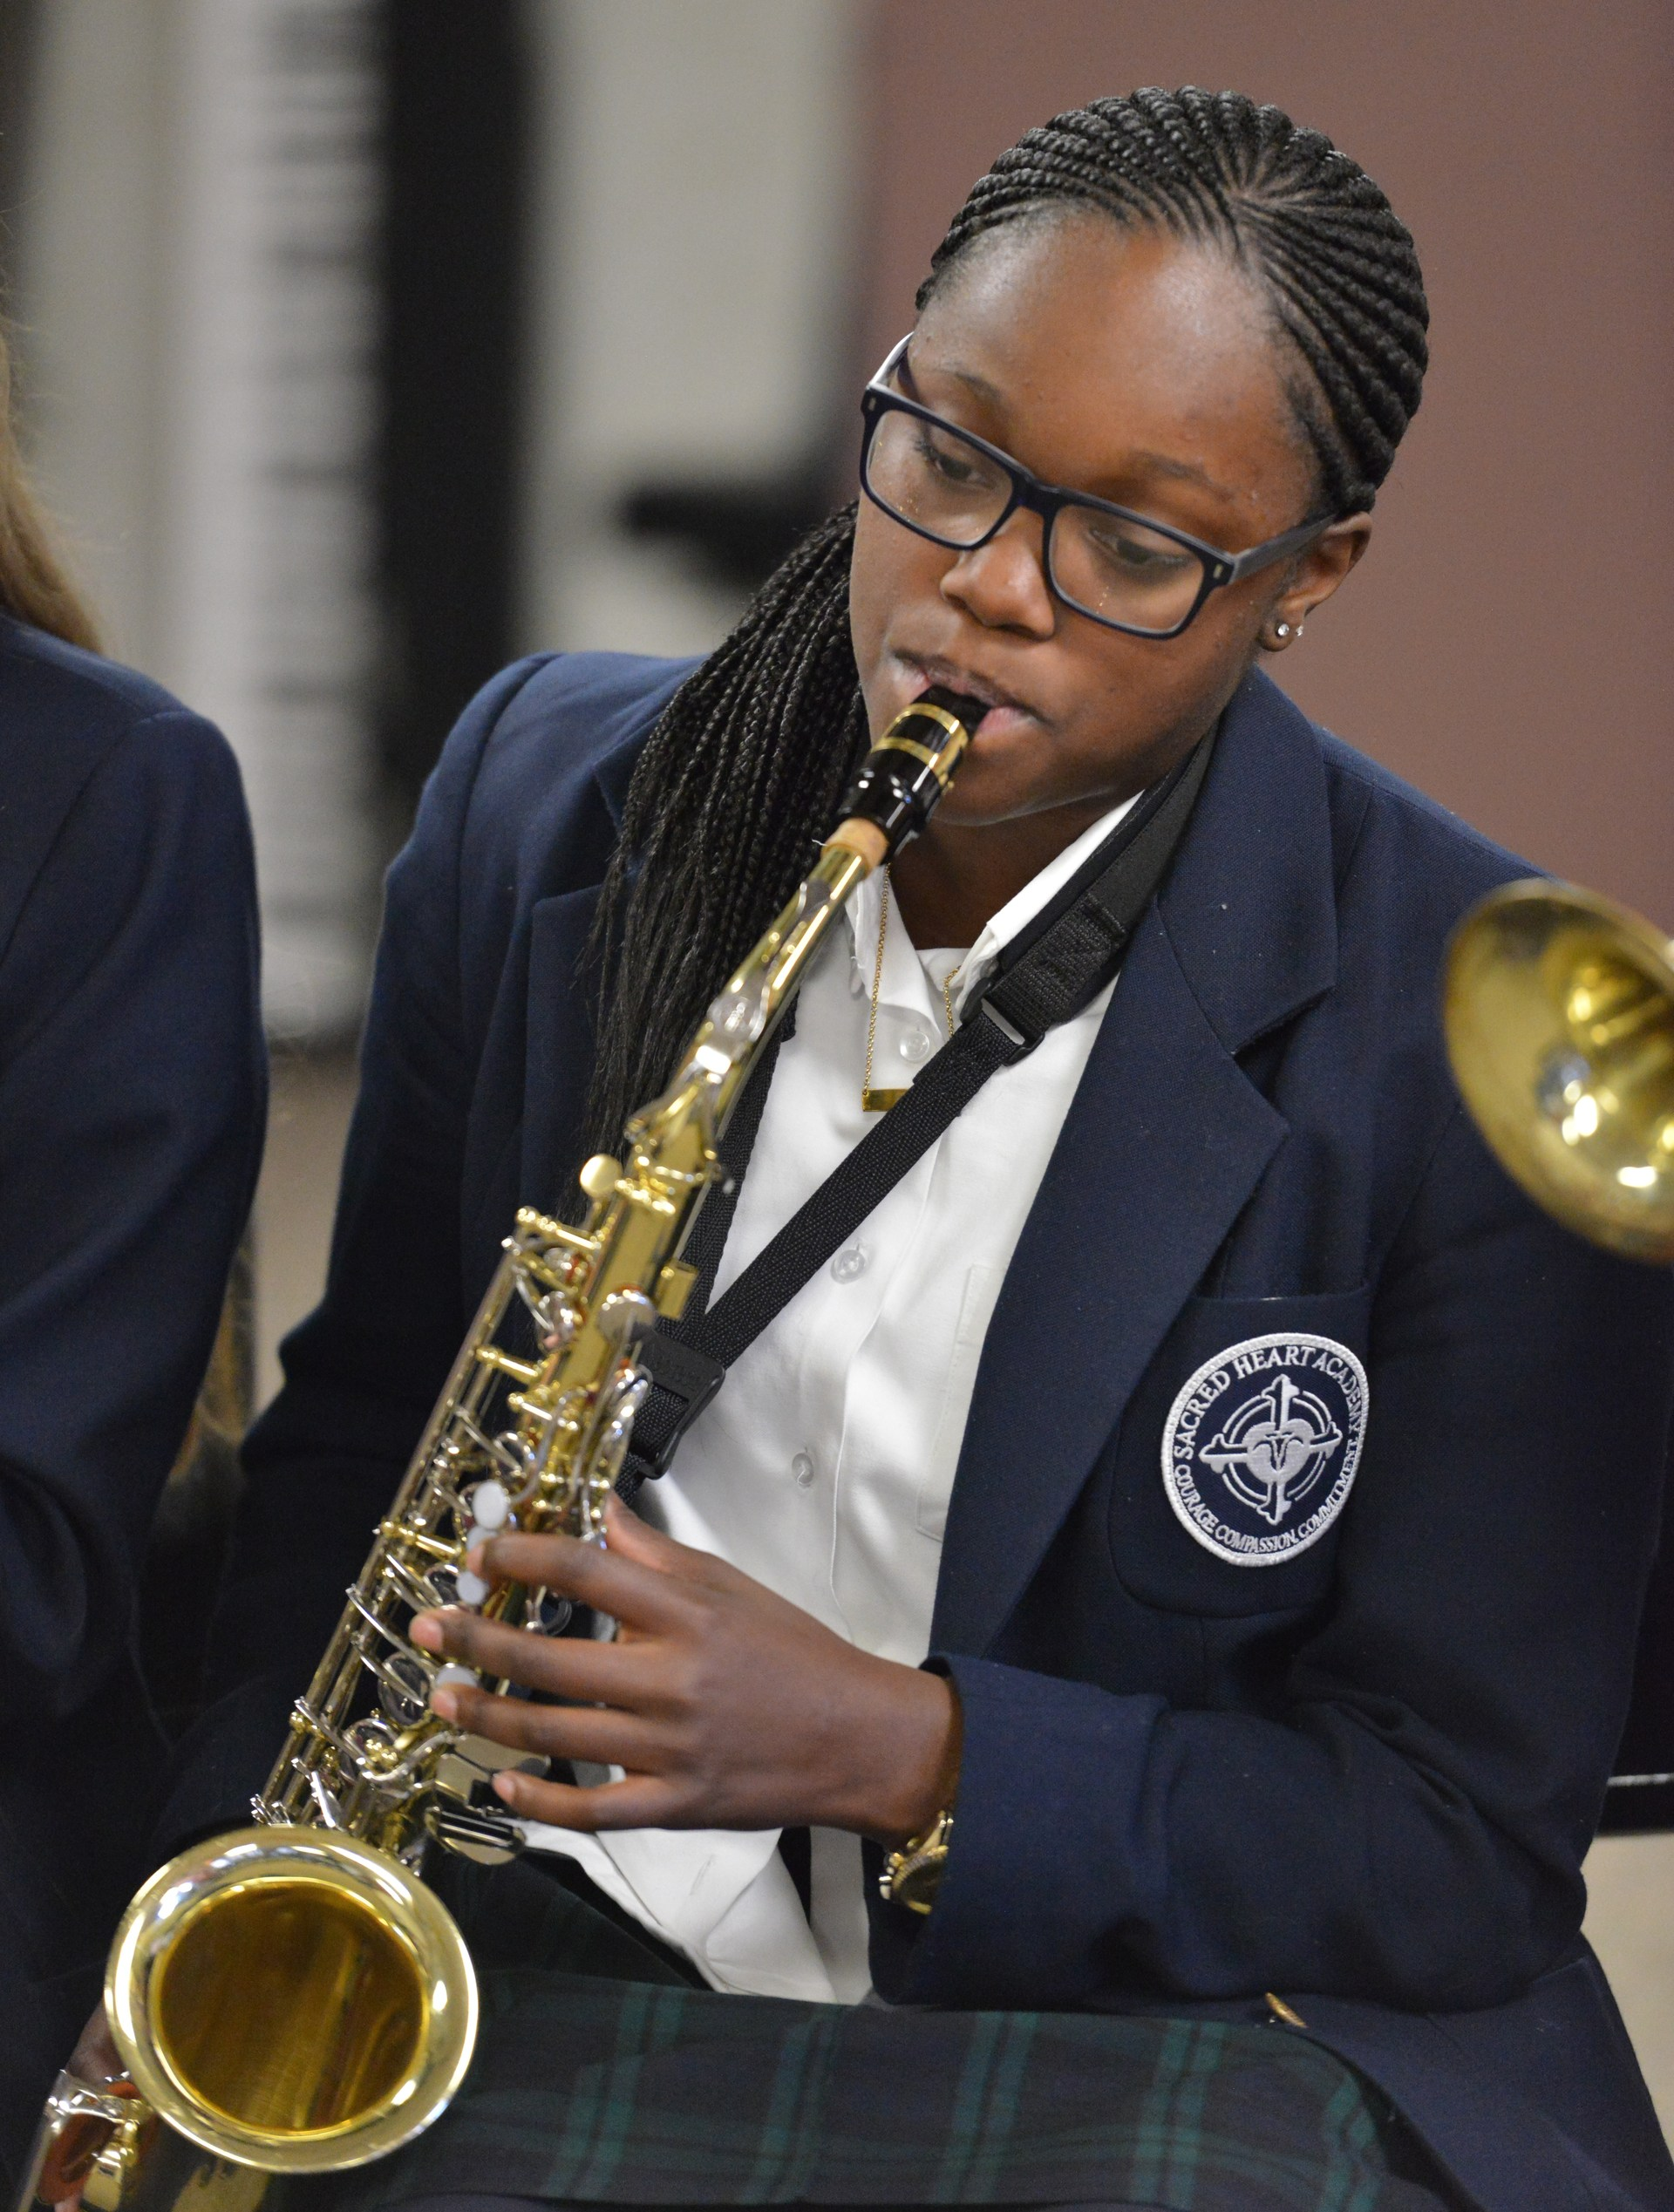 SHA student playing saxophone